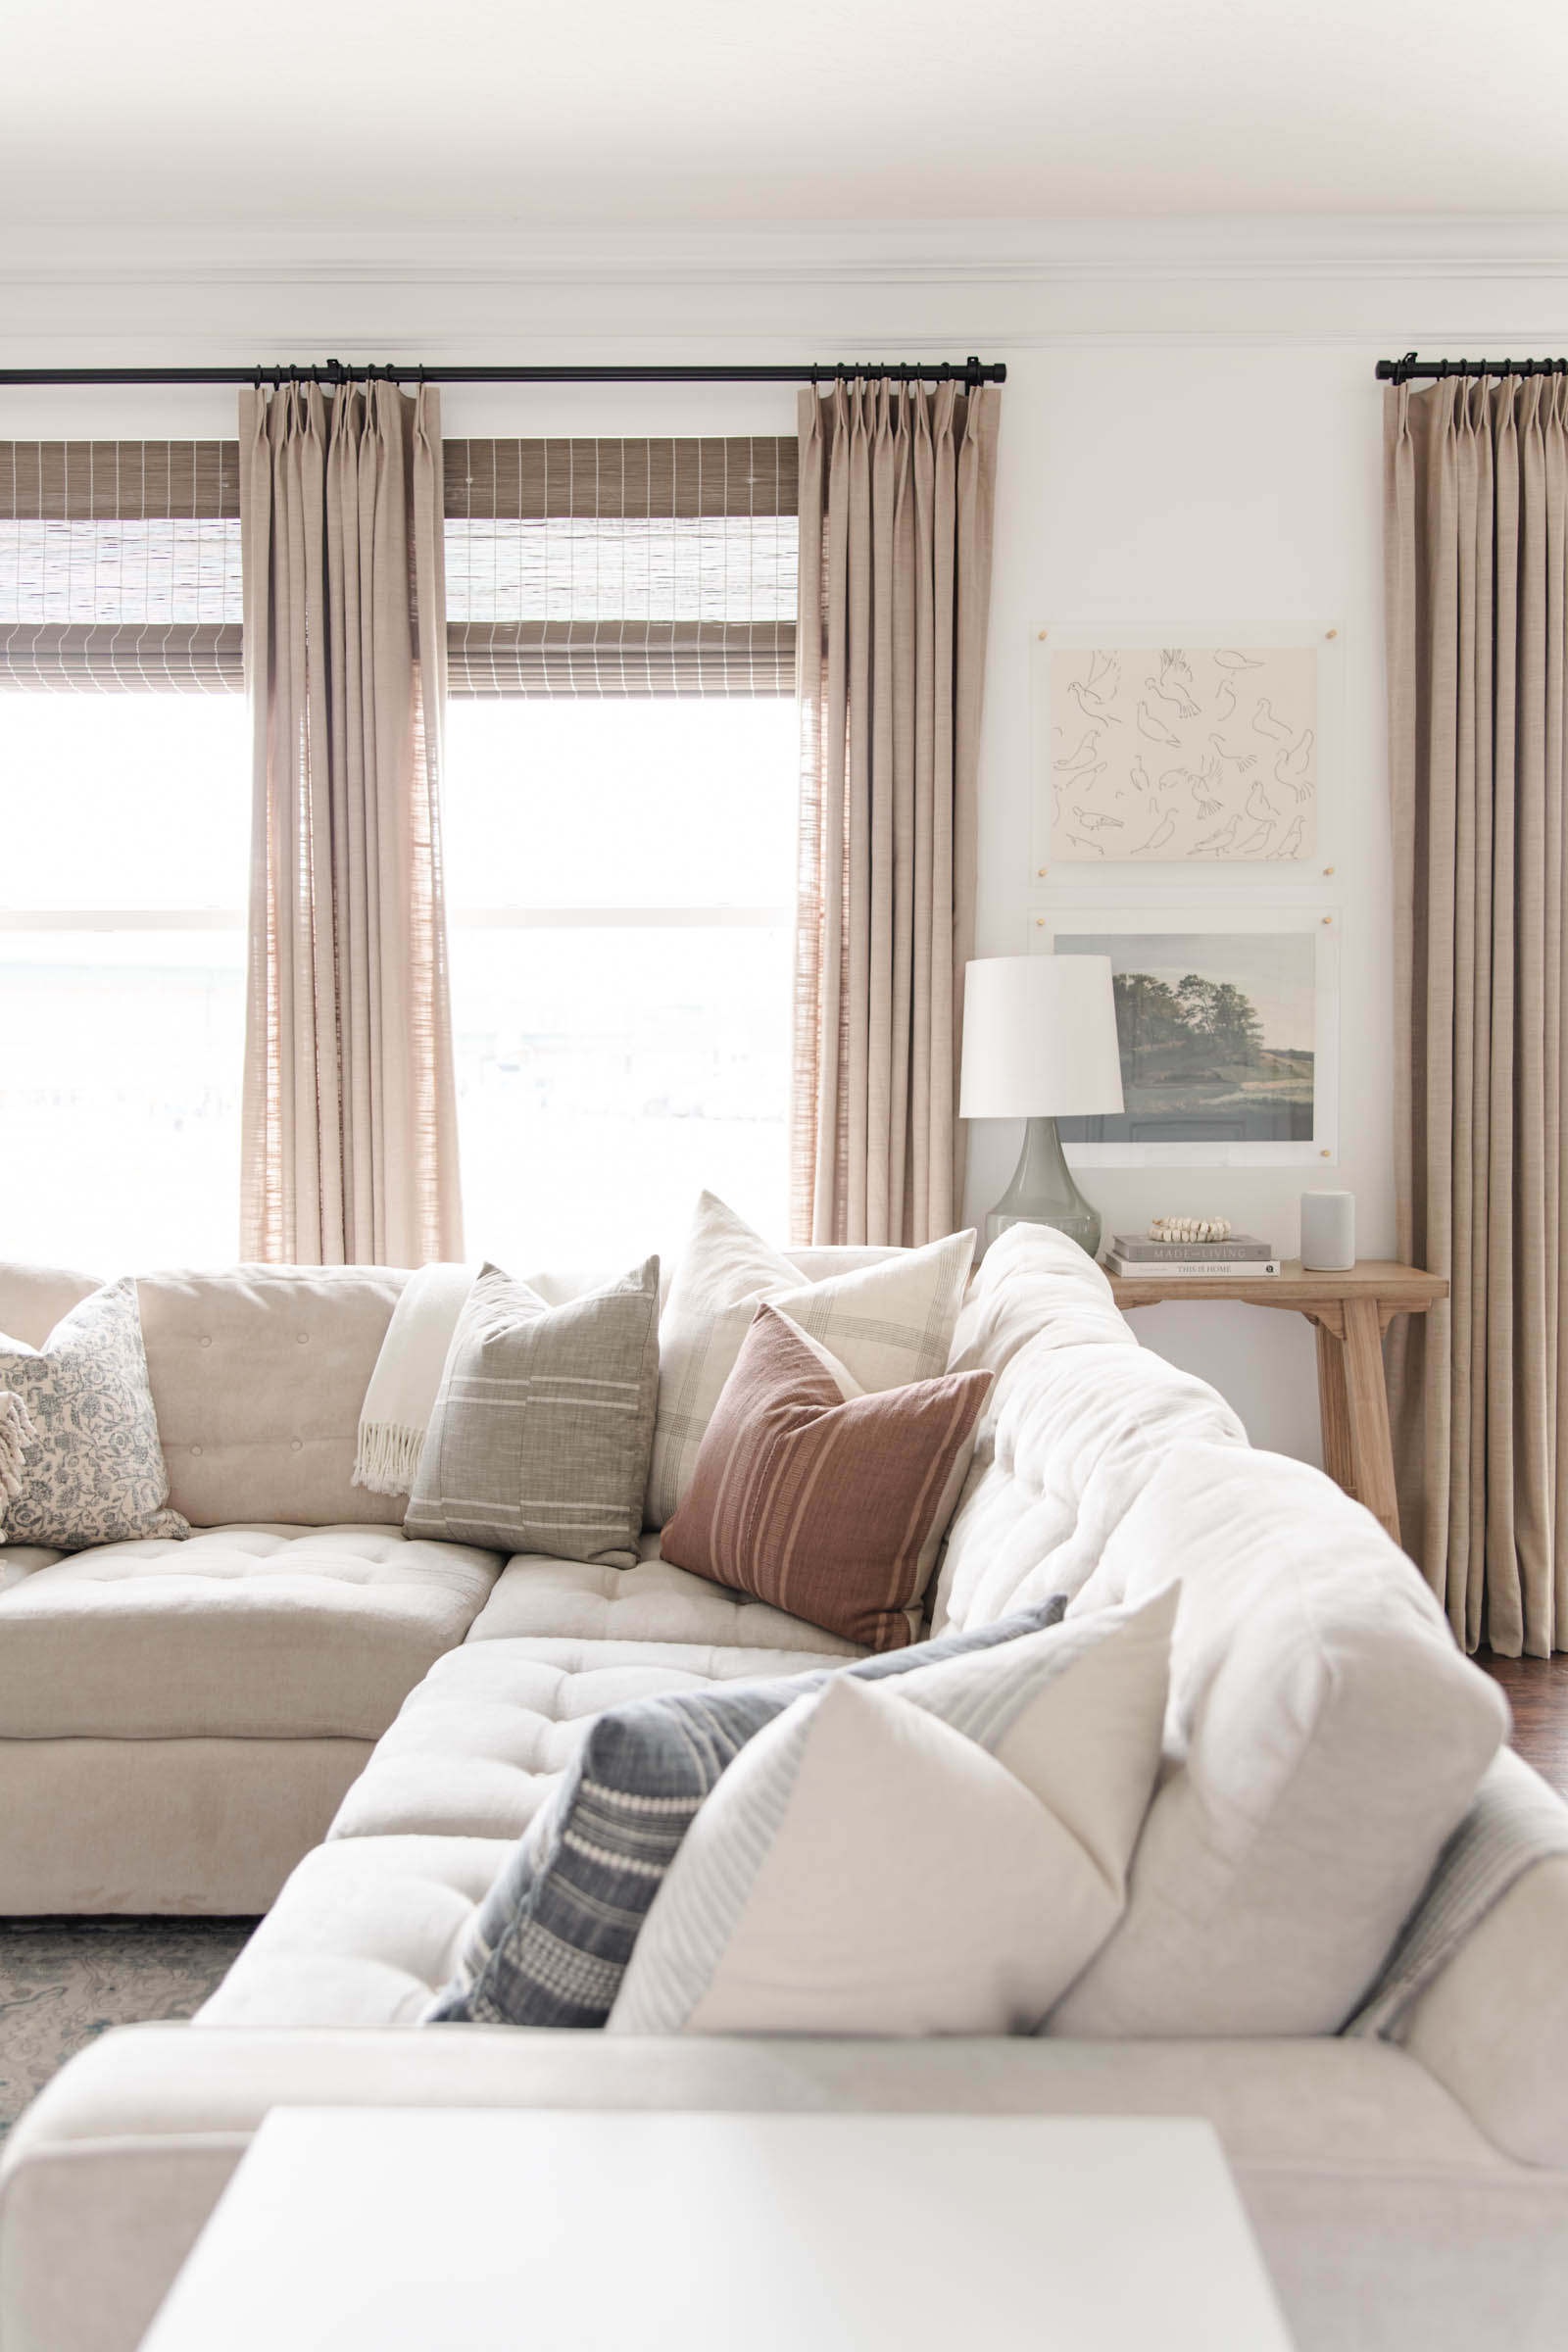 pinch pleat drapes paired with wood roman shades, cream sofa with throw pillows